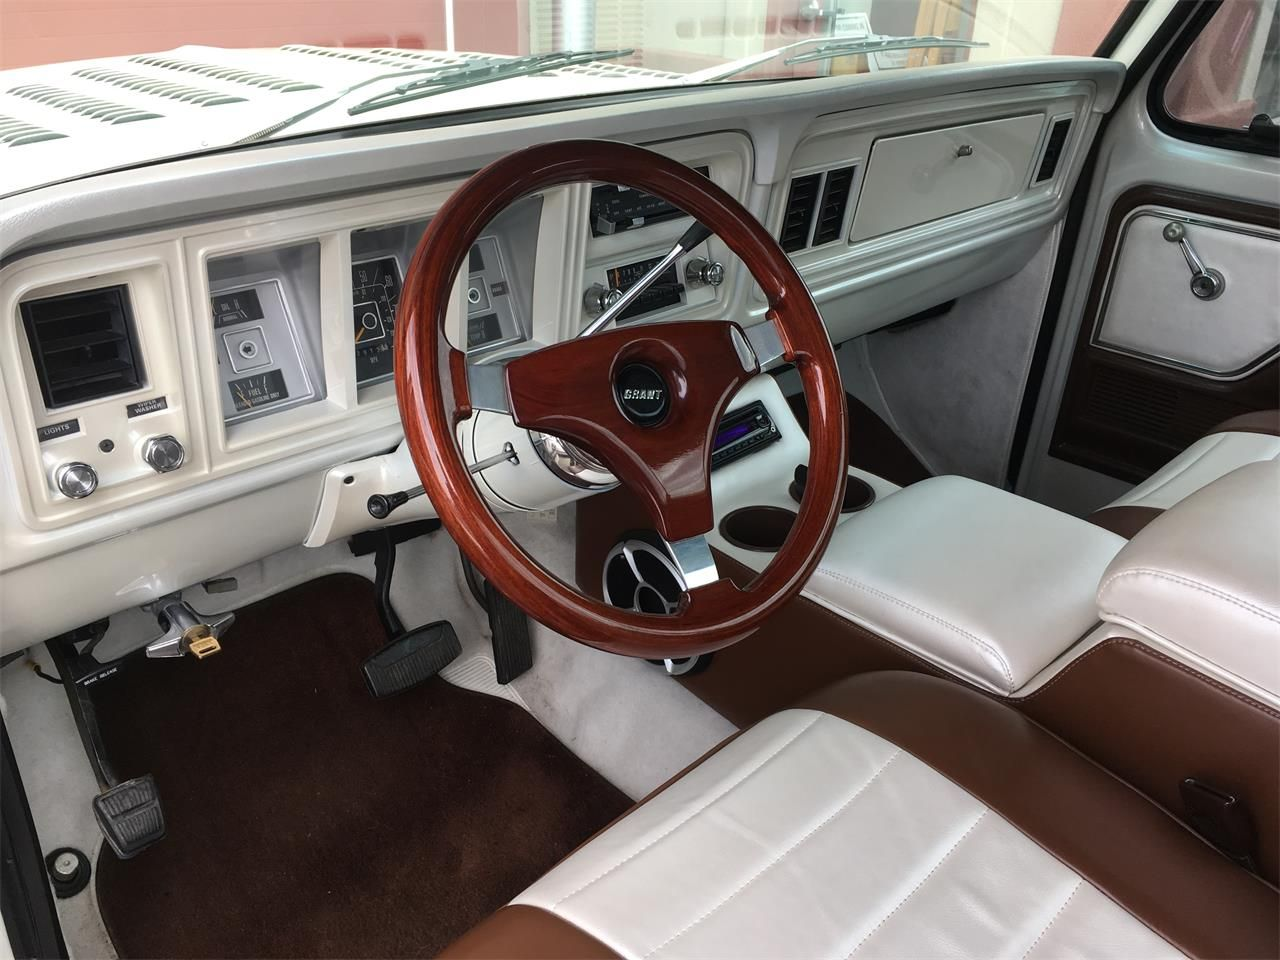 1979 Ford F150 Cc 966730 For Sale In Hailey Idaho In 2020 Ford F150 1979 Ford F150 F150